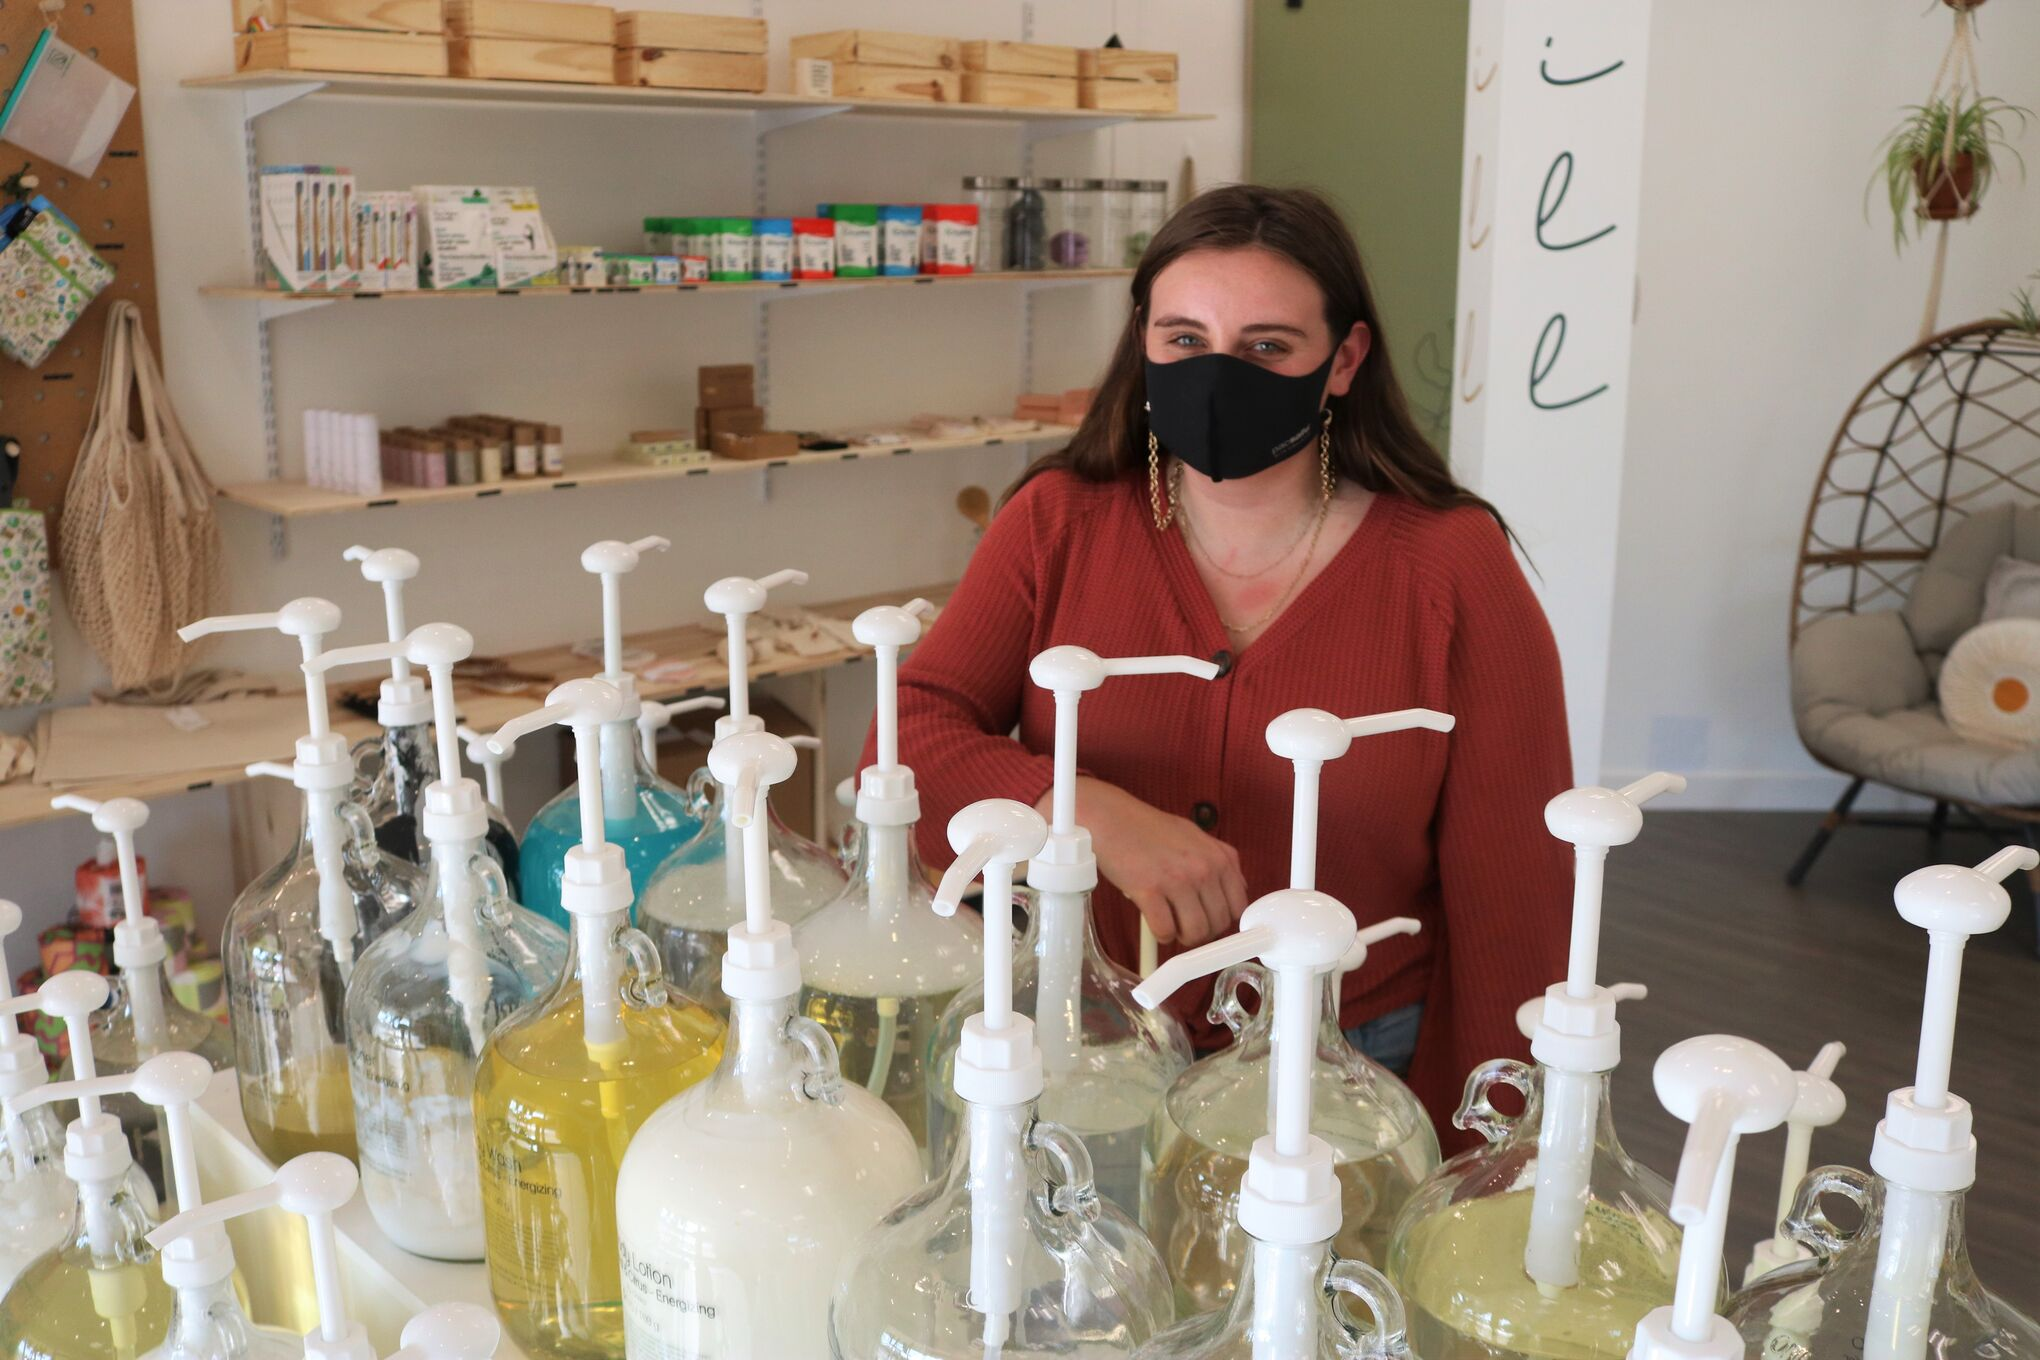 Julia MacCharles is the operator of Milieu Market, a new shop that focuses on zero-waste, eco-friendly products.